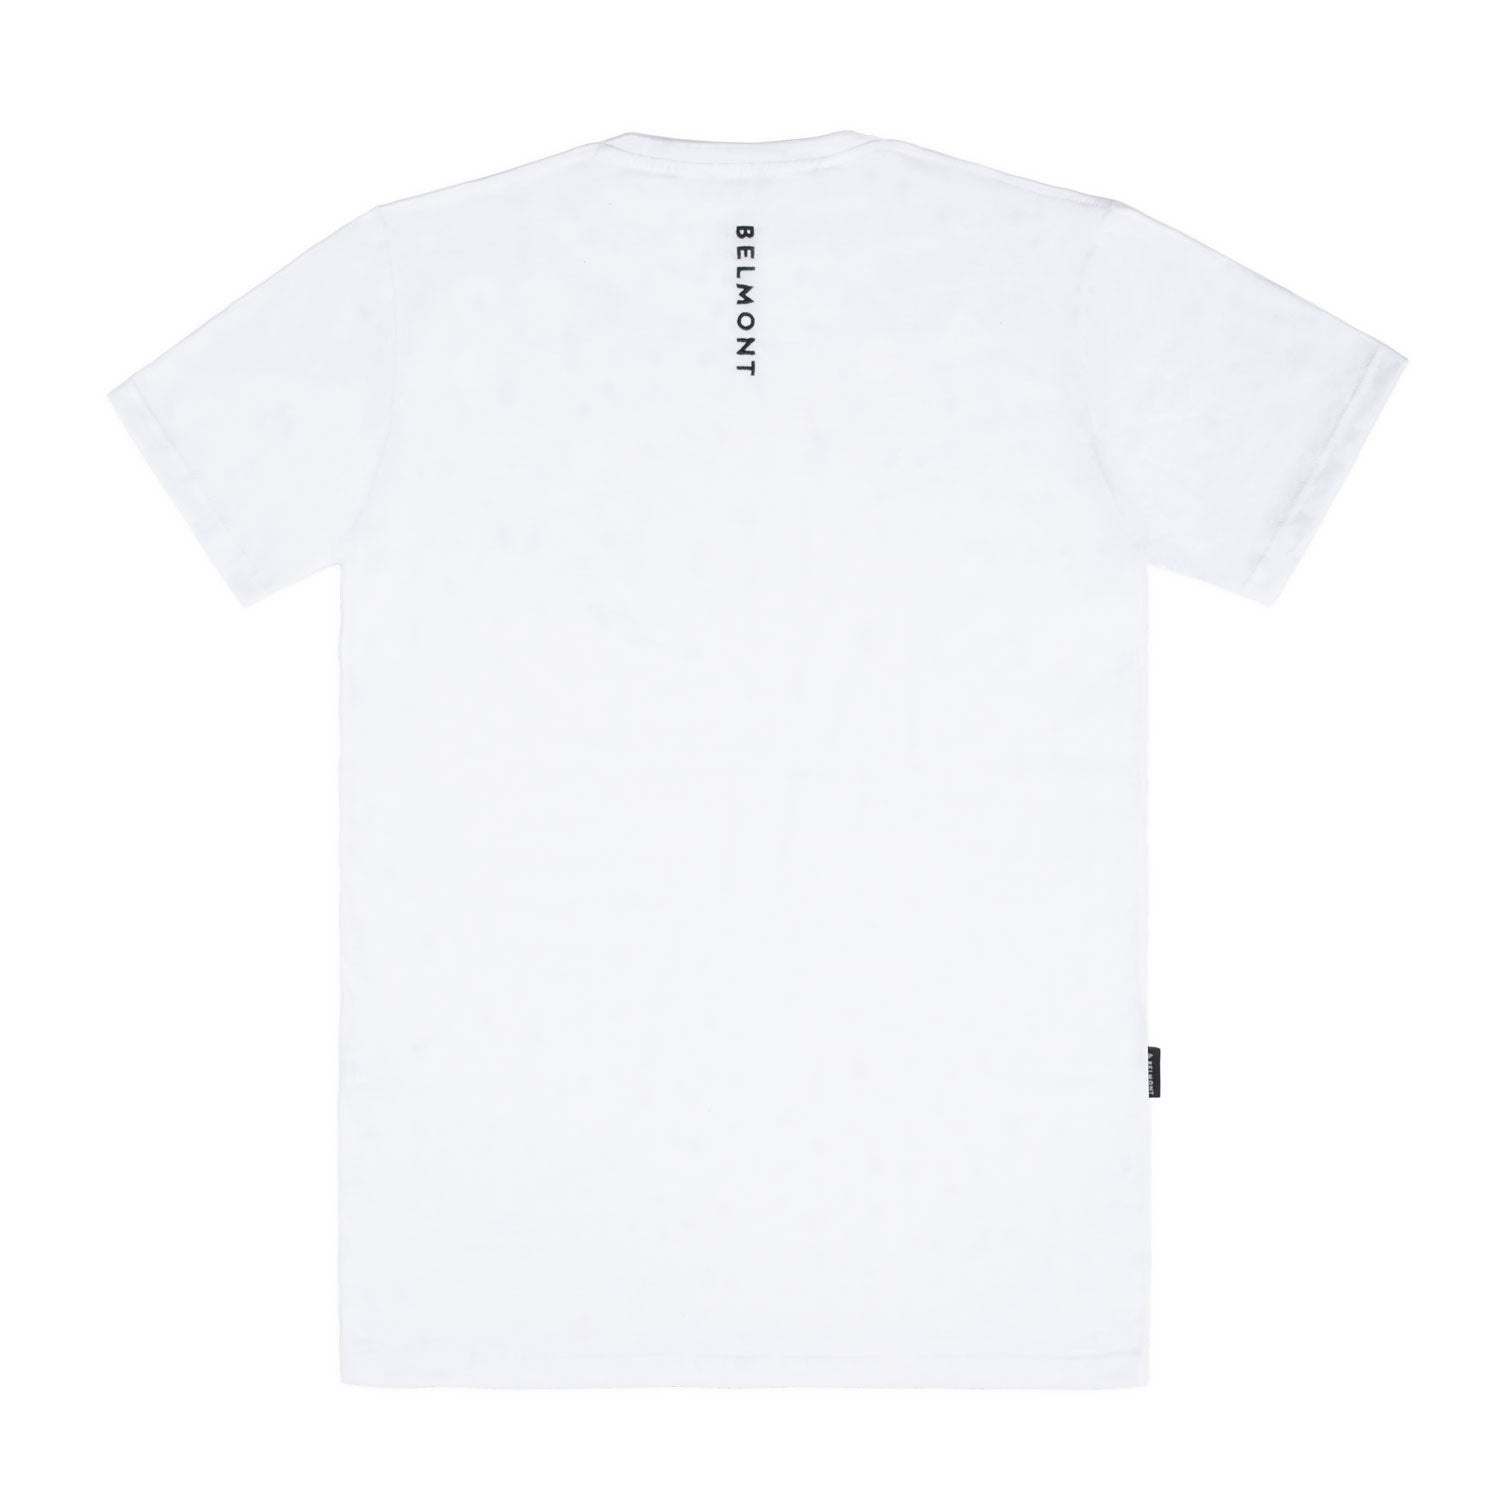 Camiseta BORDADA V/_001 - Blanca